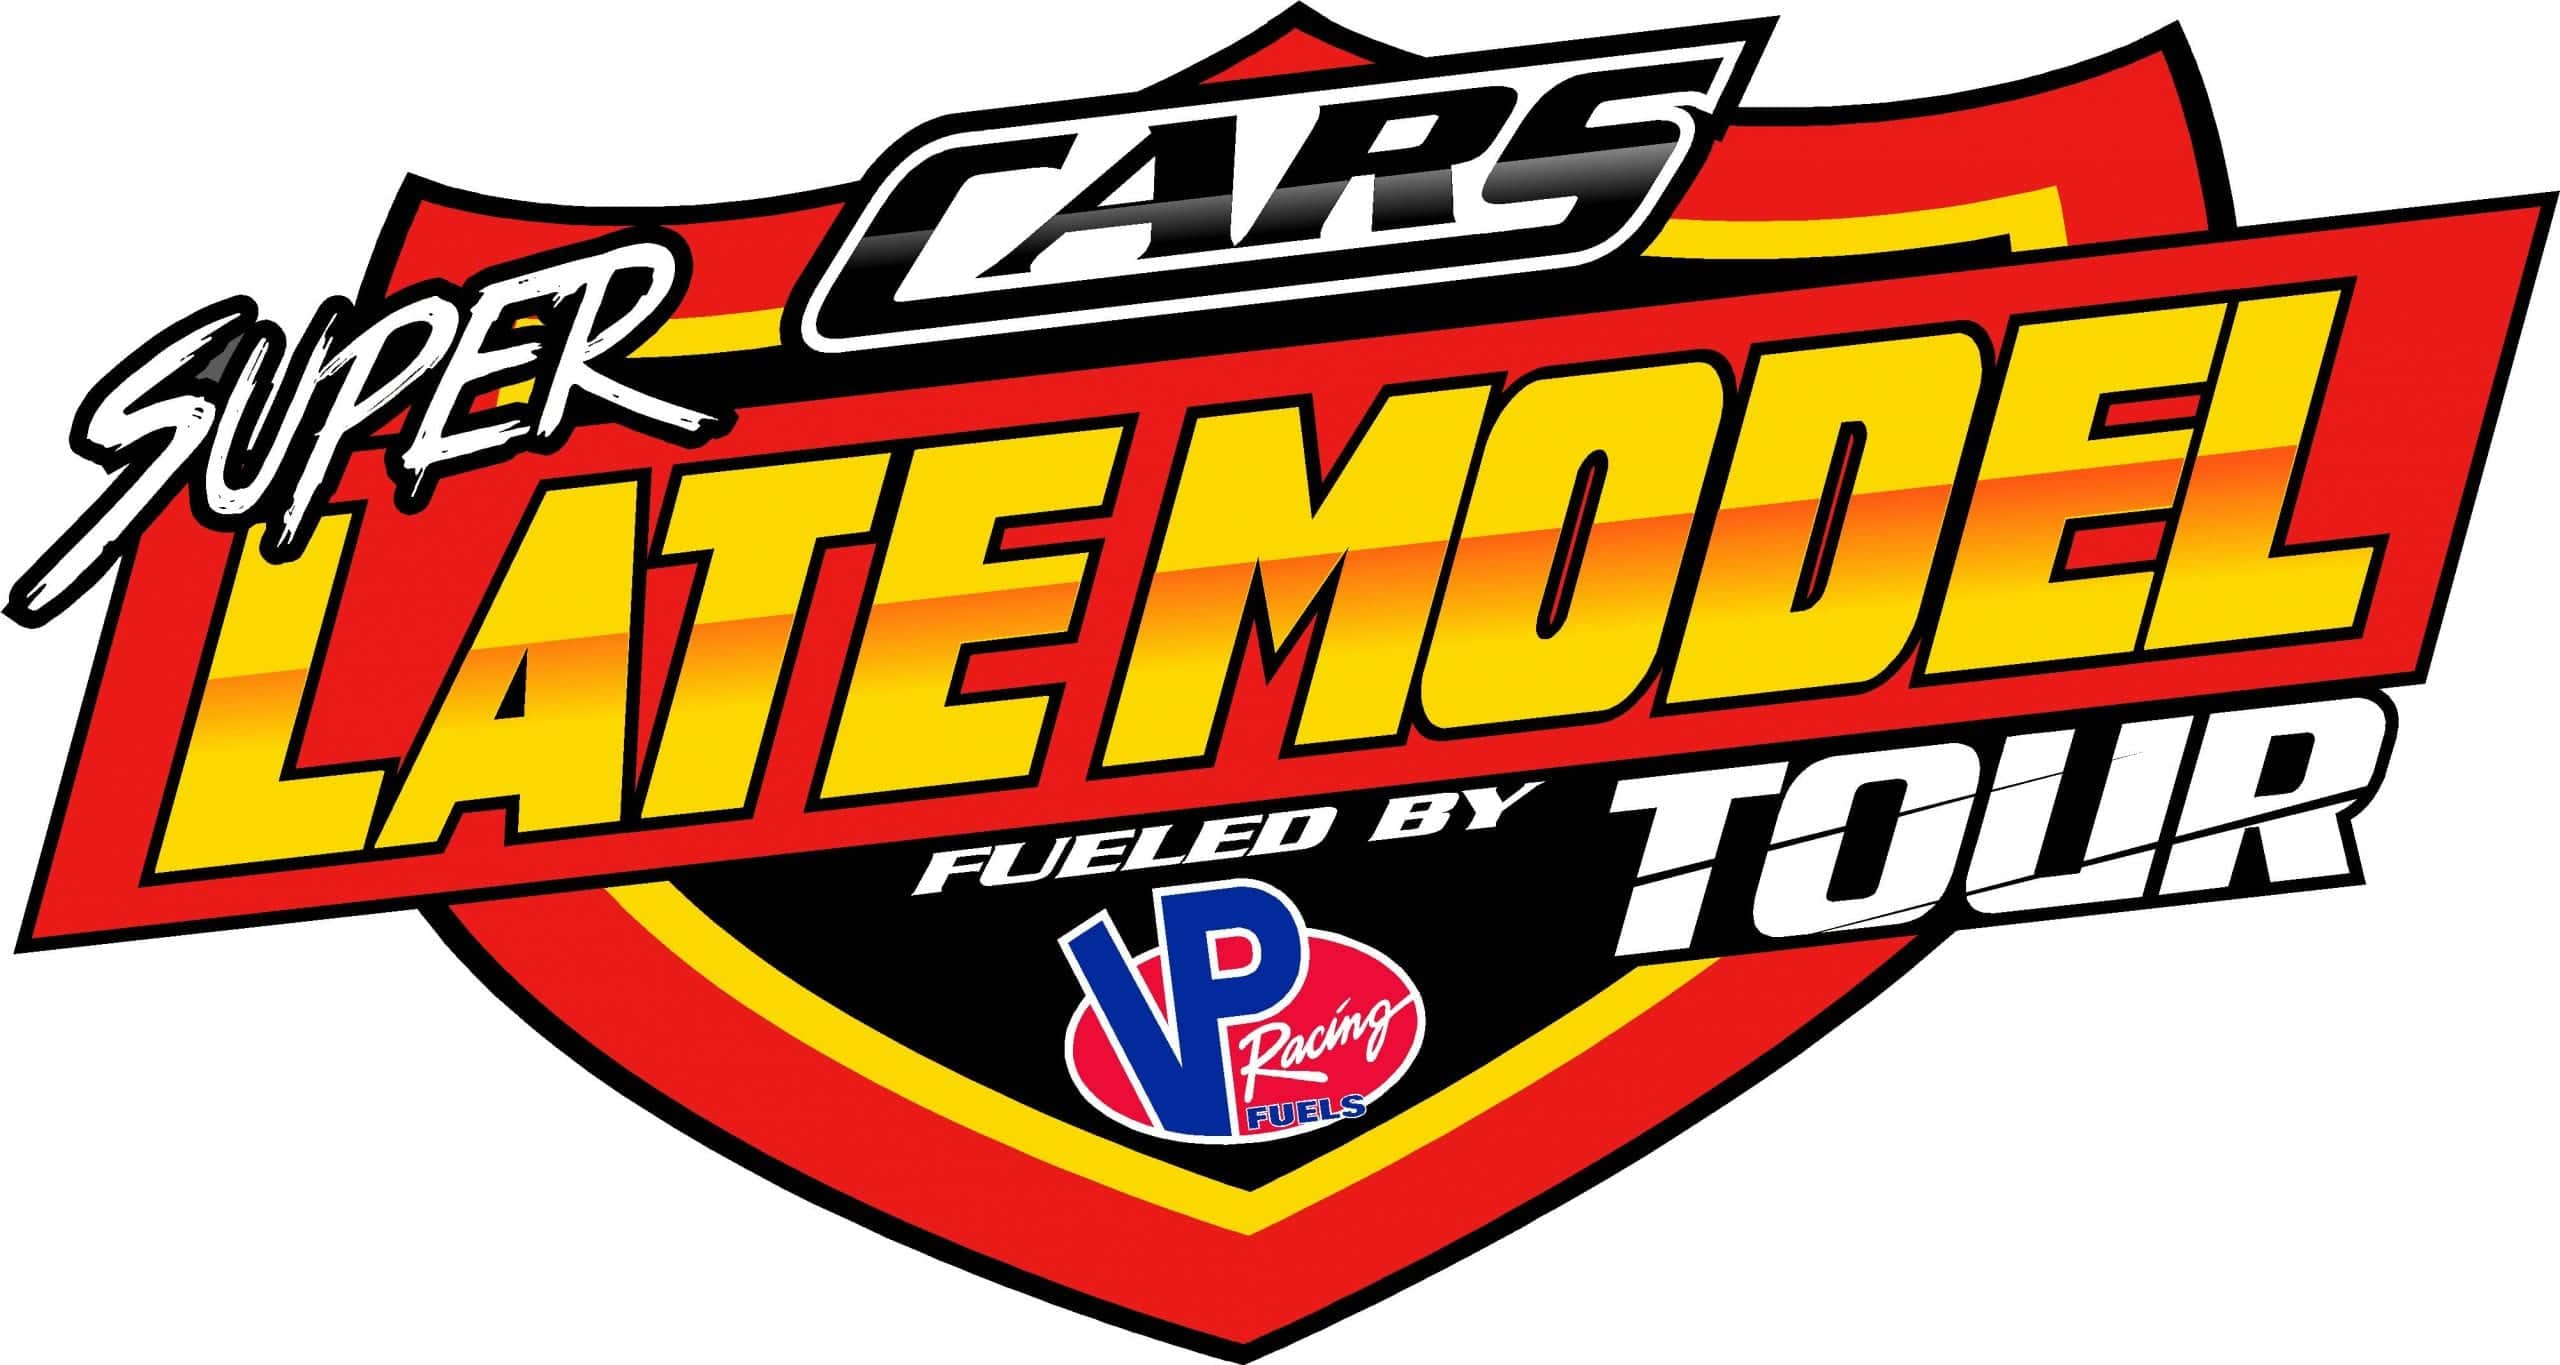 VP RACING FUELS NAMED OFFICIAL FUEL OF CARS TOUR, TITLE SPONSOR OF SUPER LATE MODEL DIVISION